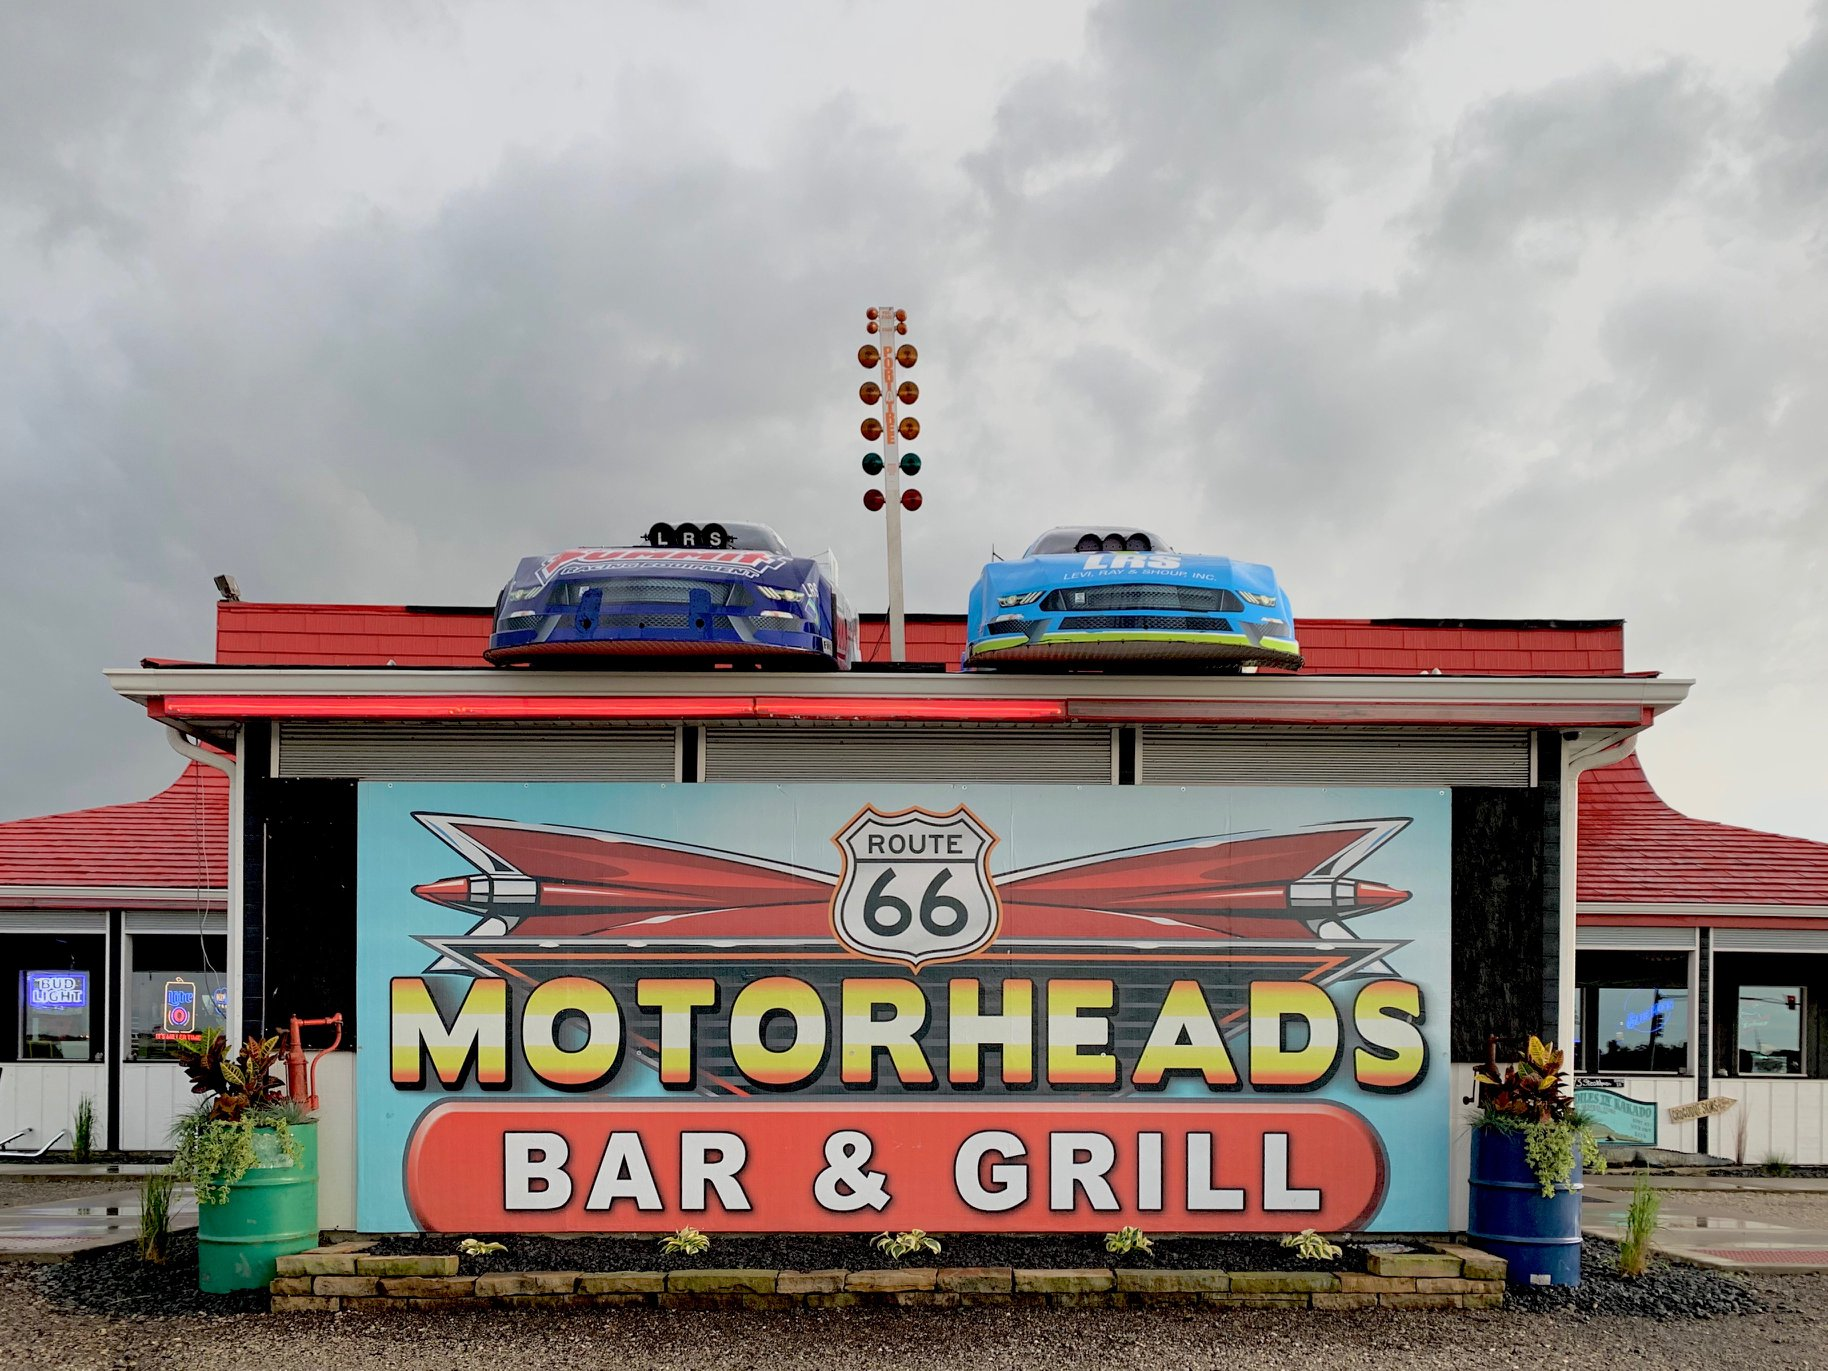 Route 66 Motorheads Bar & Grill